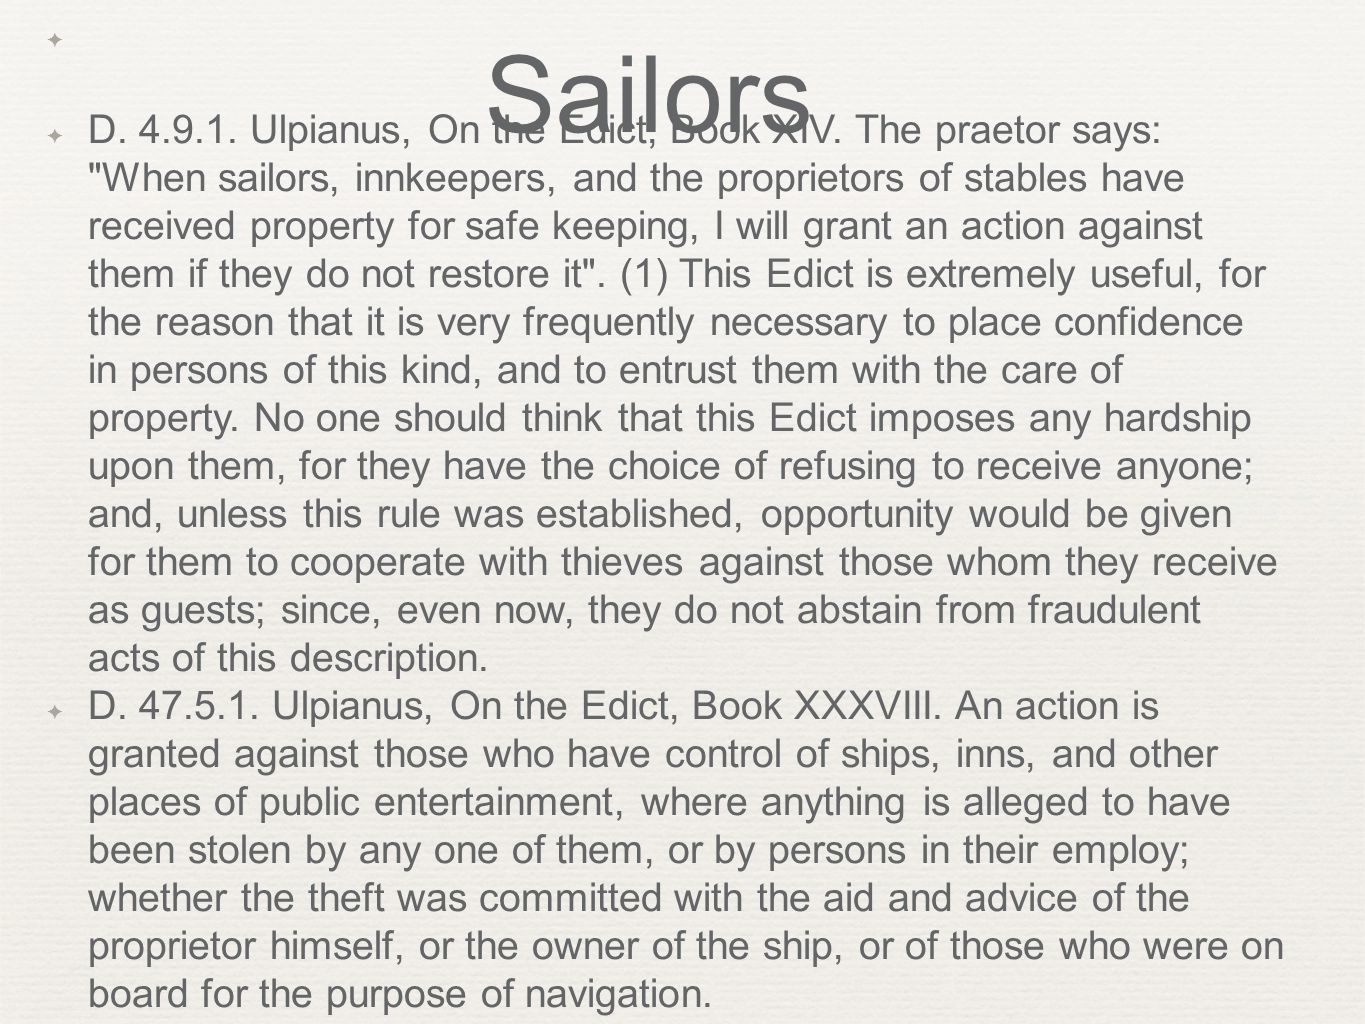 Sailors ✦ ✦ D. 4.9.1. Ulpianus, On the Edict, Book XIV.